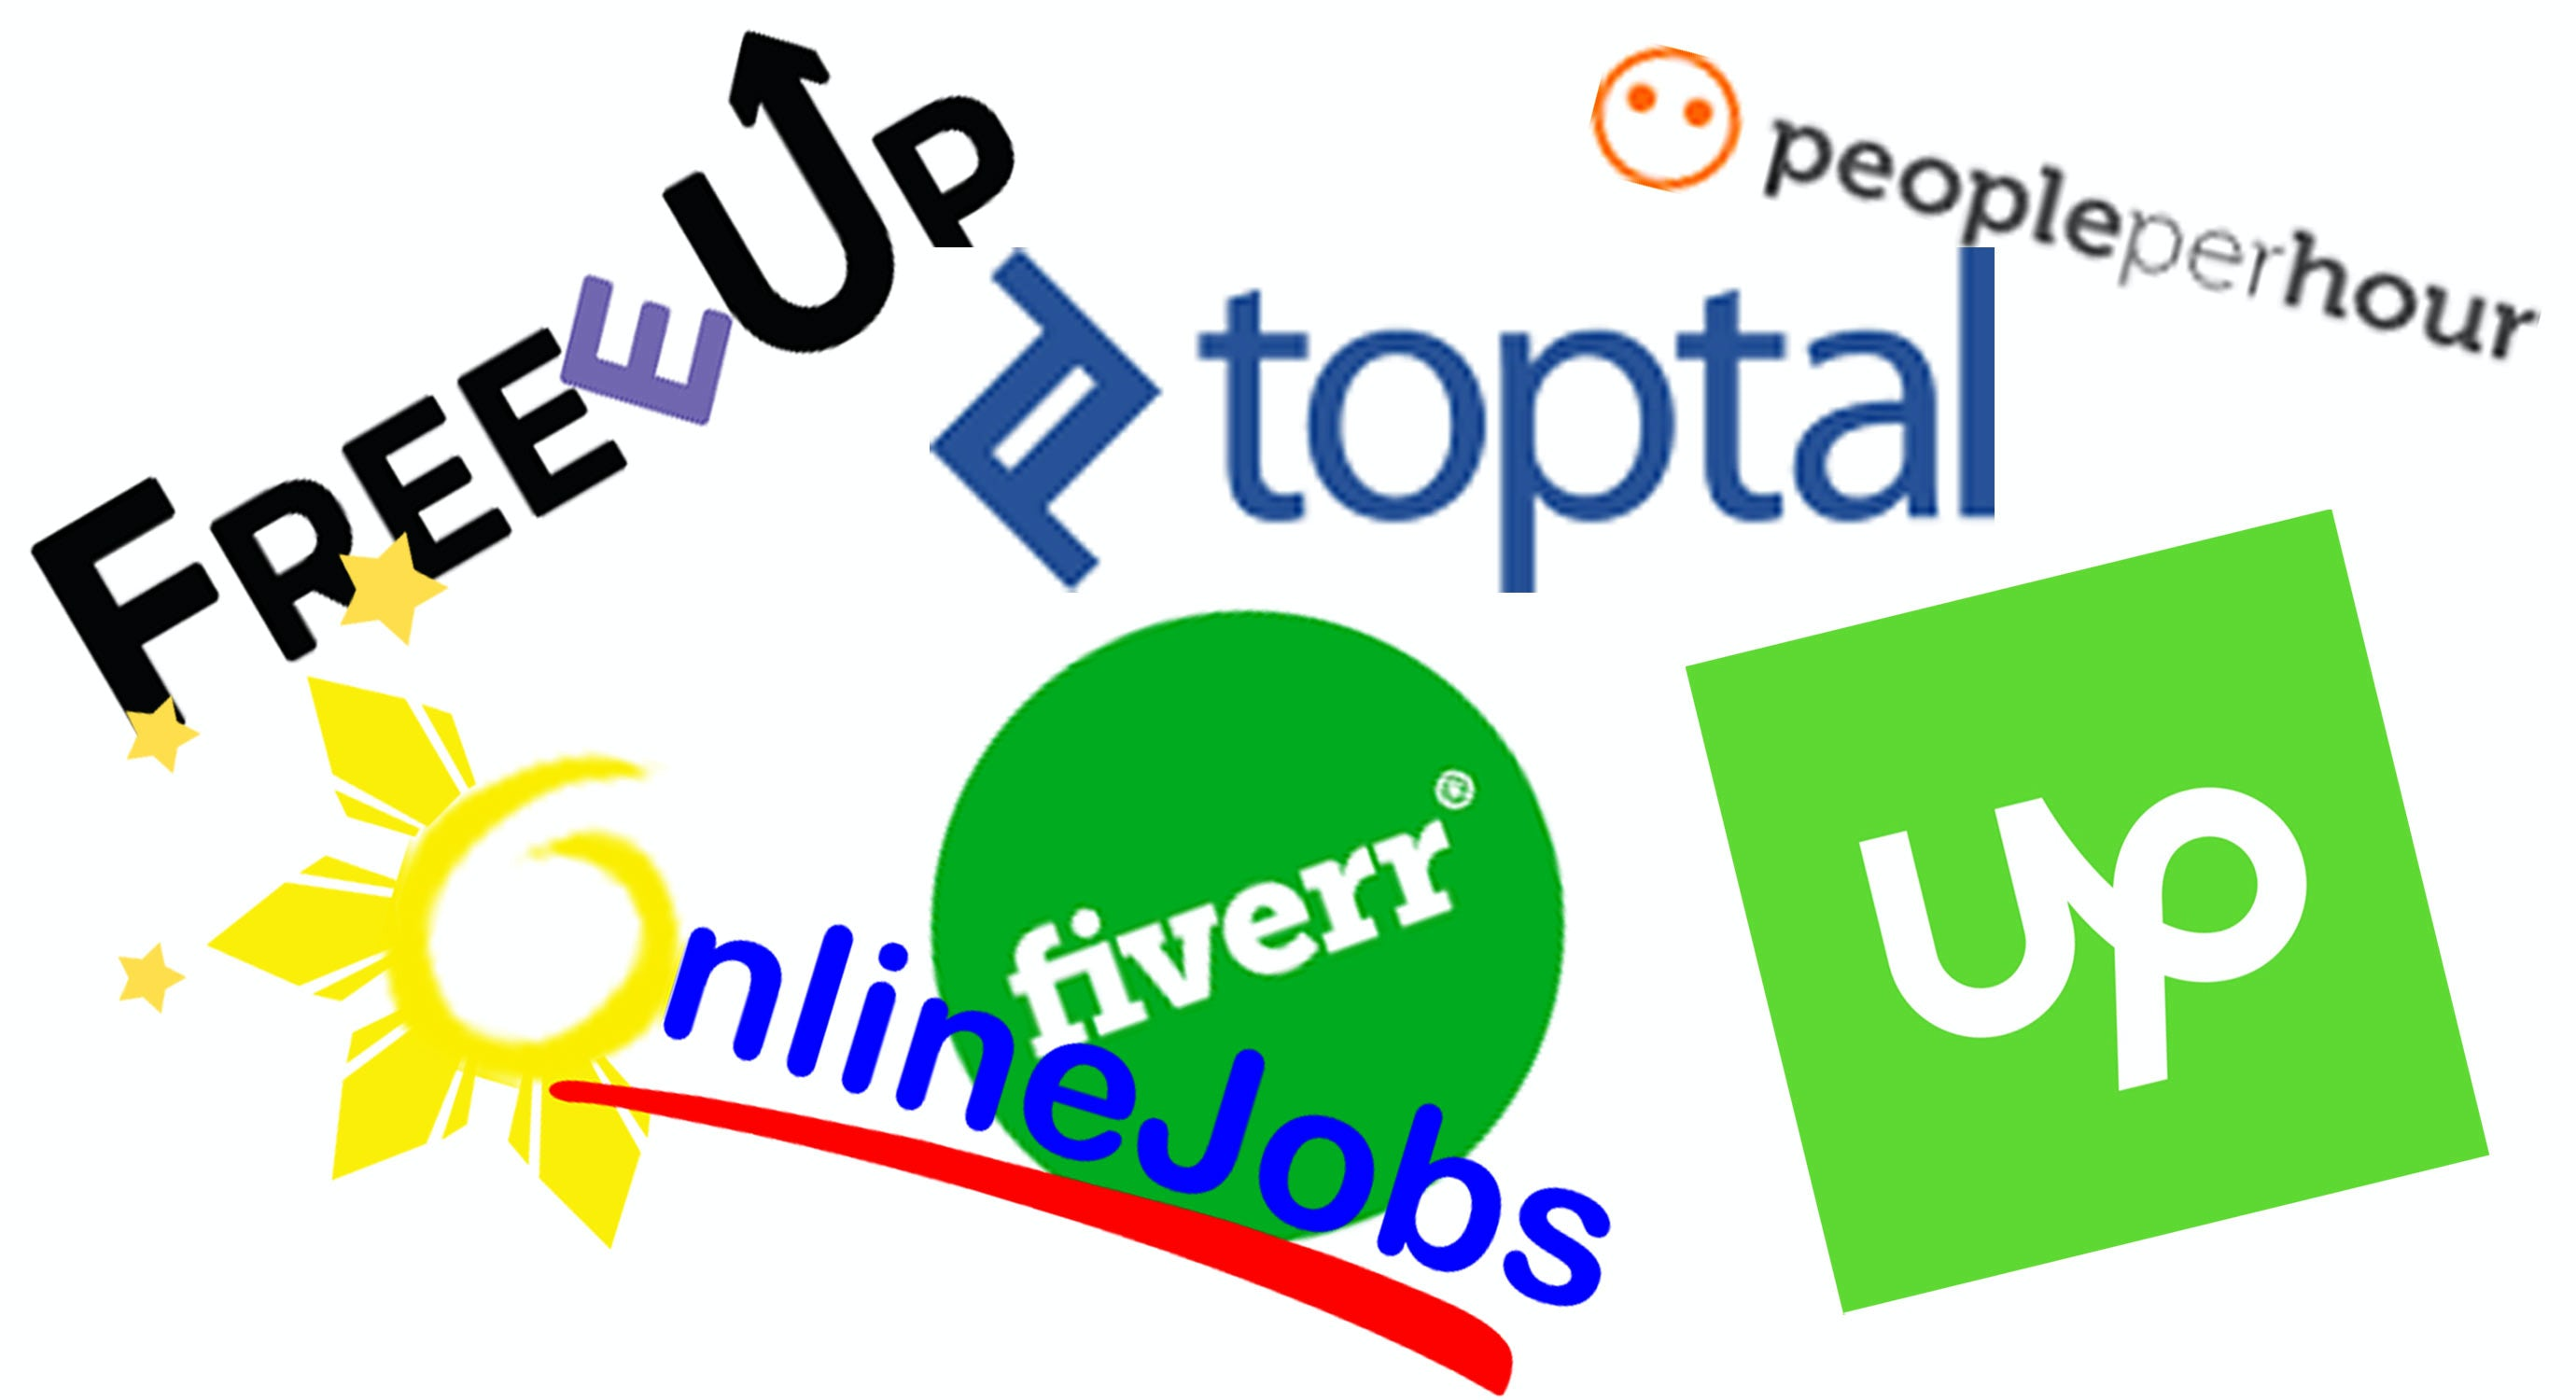 Collage of icons of freelance marketplaces